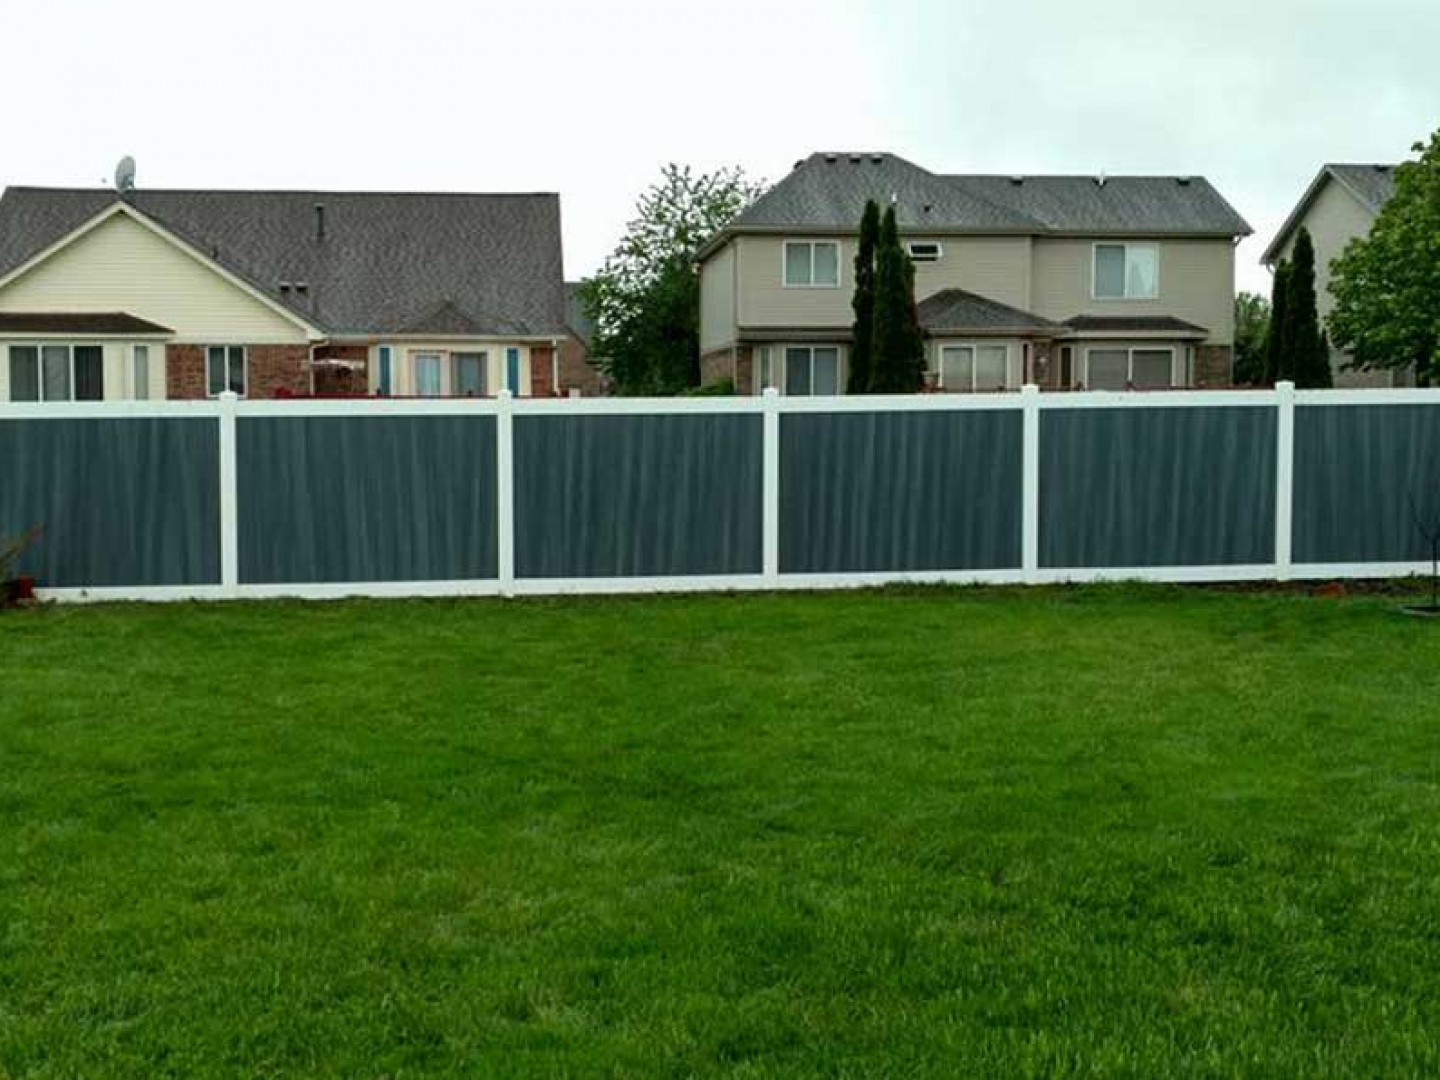 Is Your Home Properly Secured With a Quality Fence?